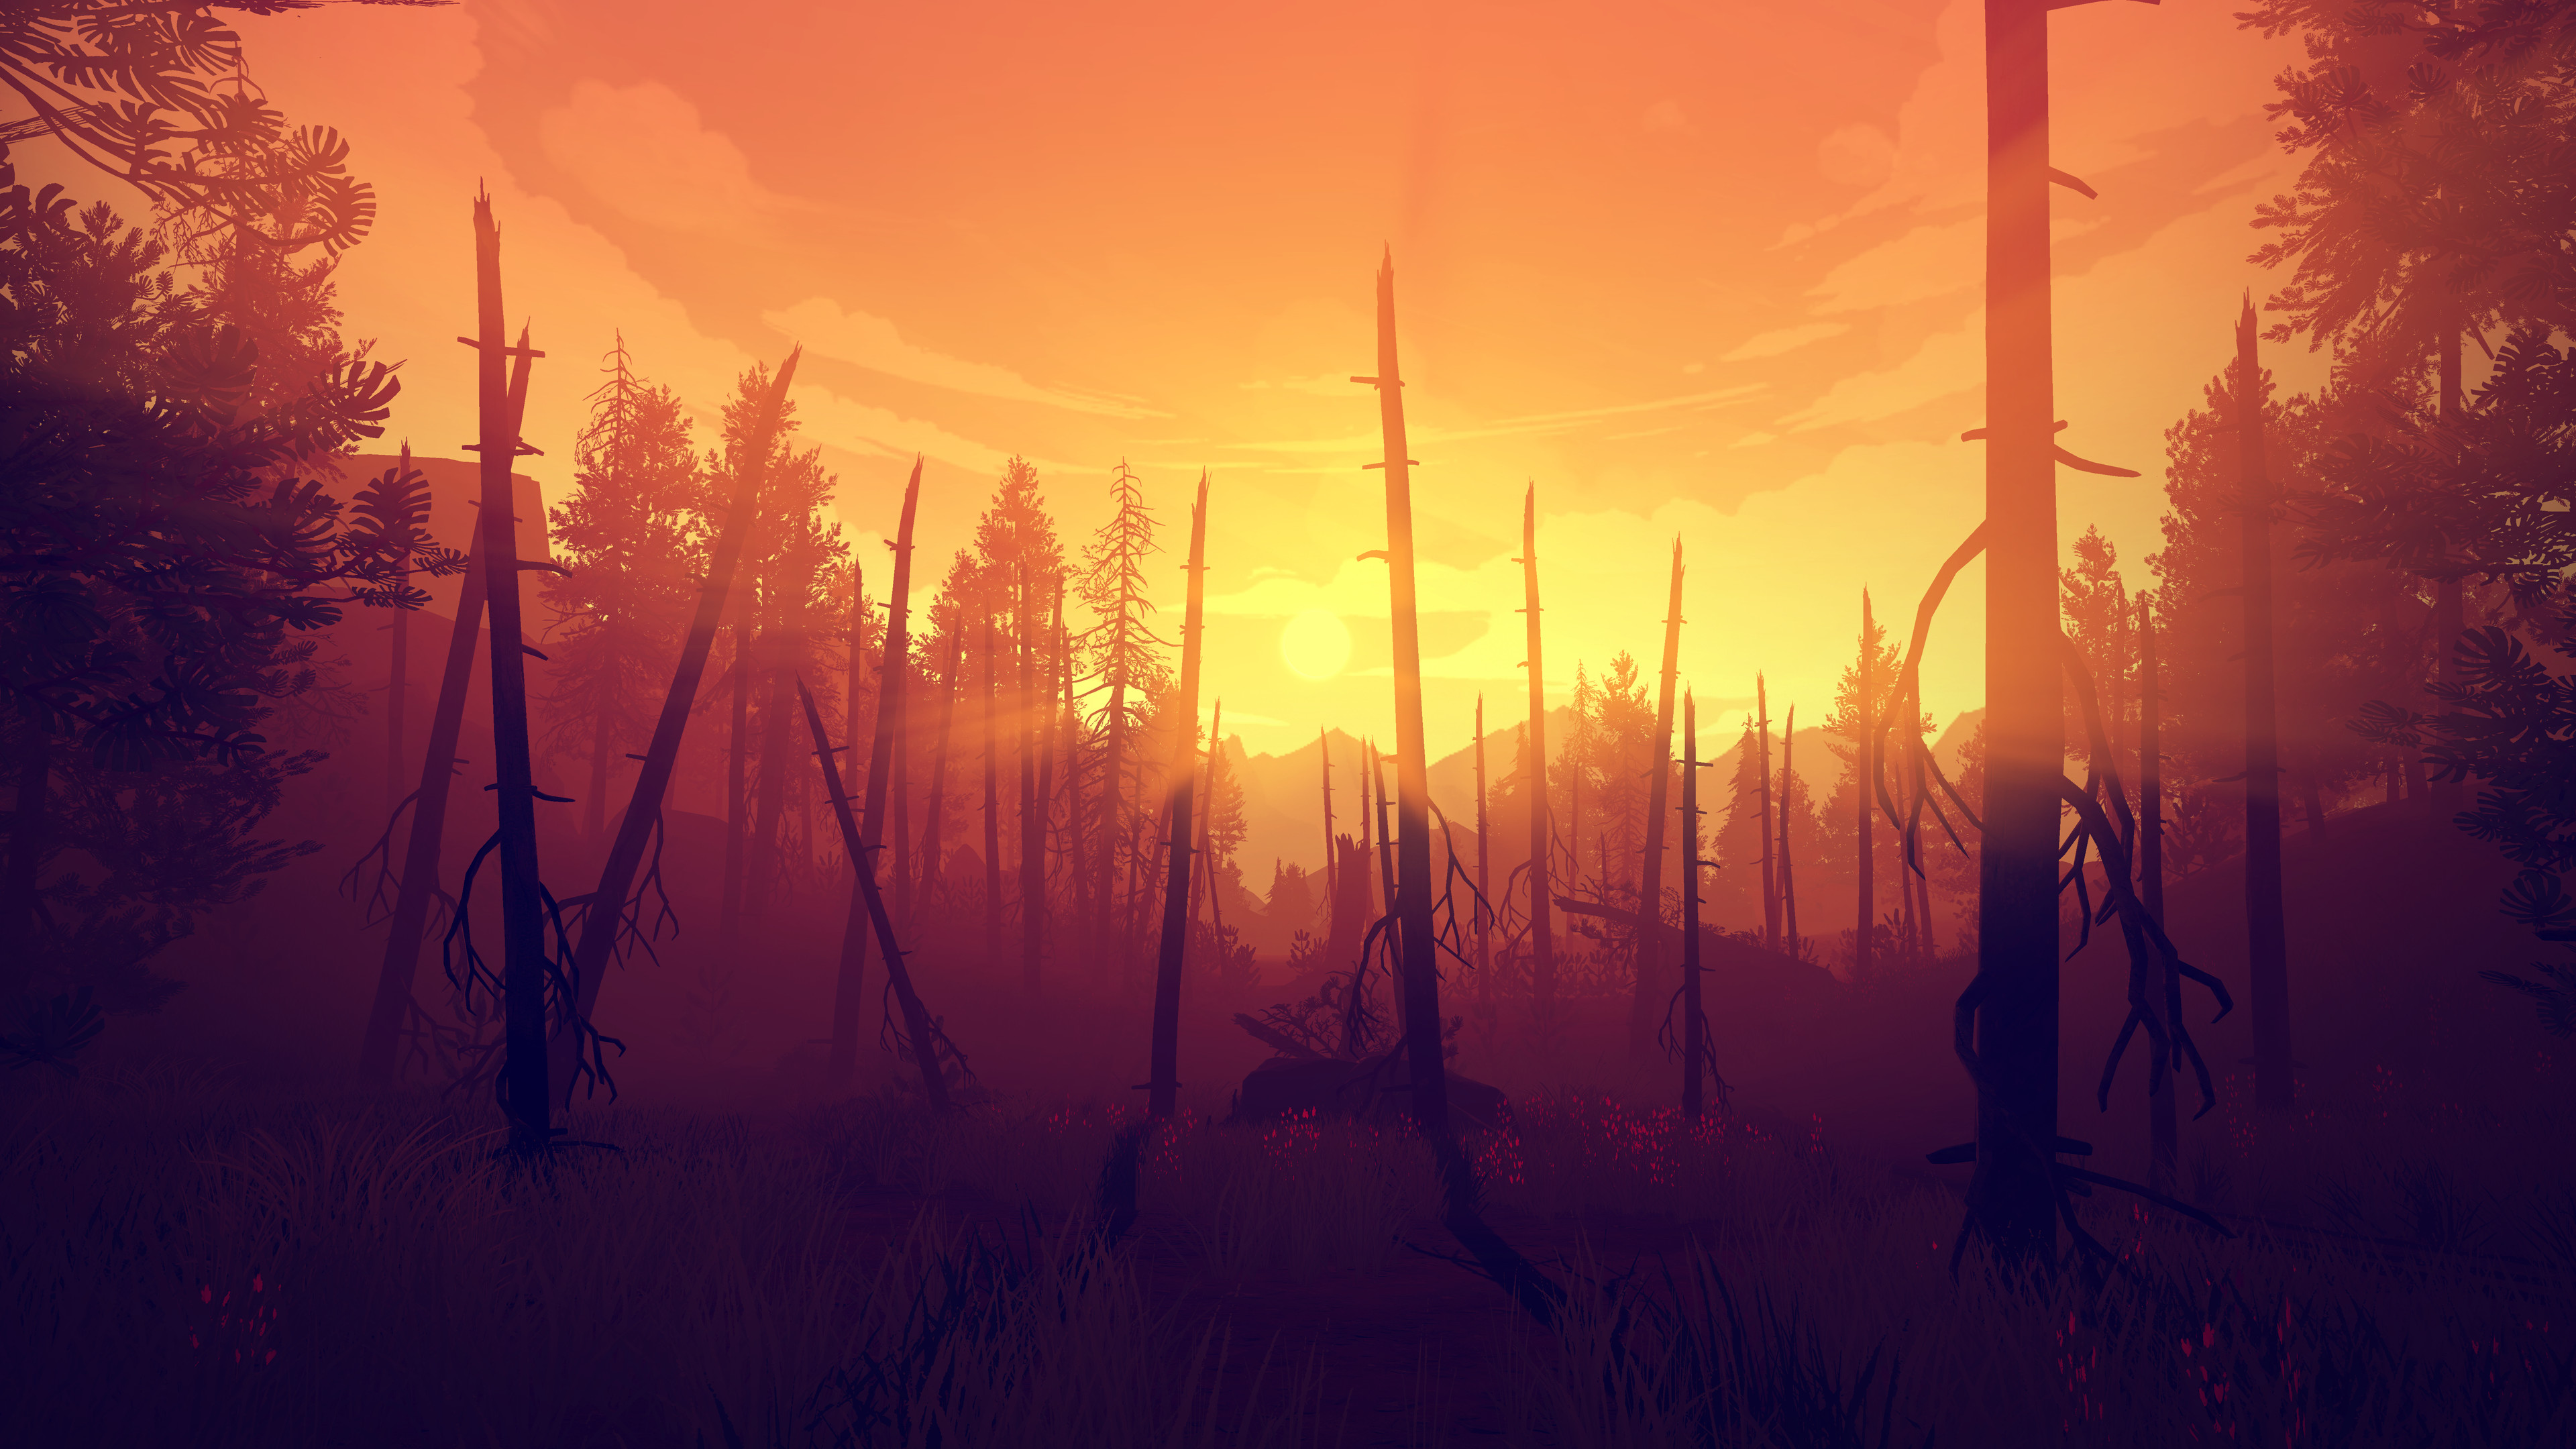 Firewatch screenshot1 on PCGamesCDN you can download cracked unlocked full pc version game direct free download with mirrors and torrent.